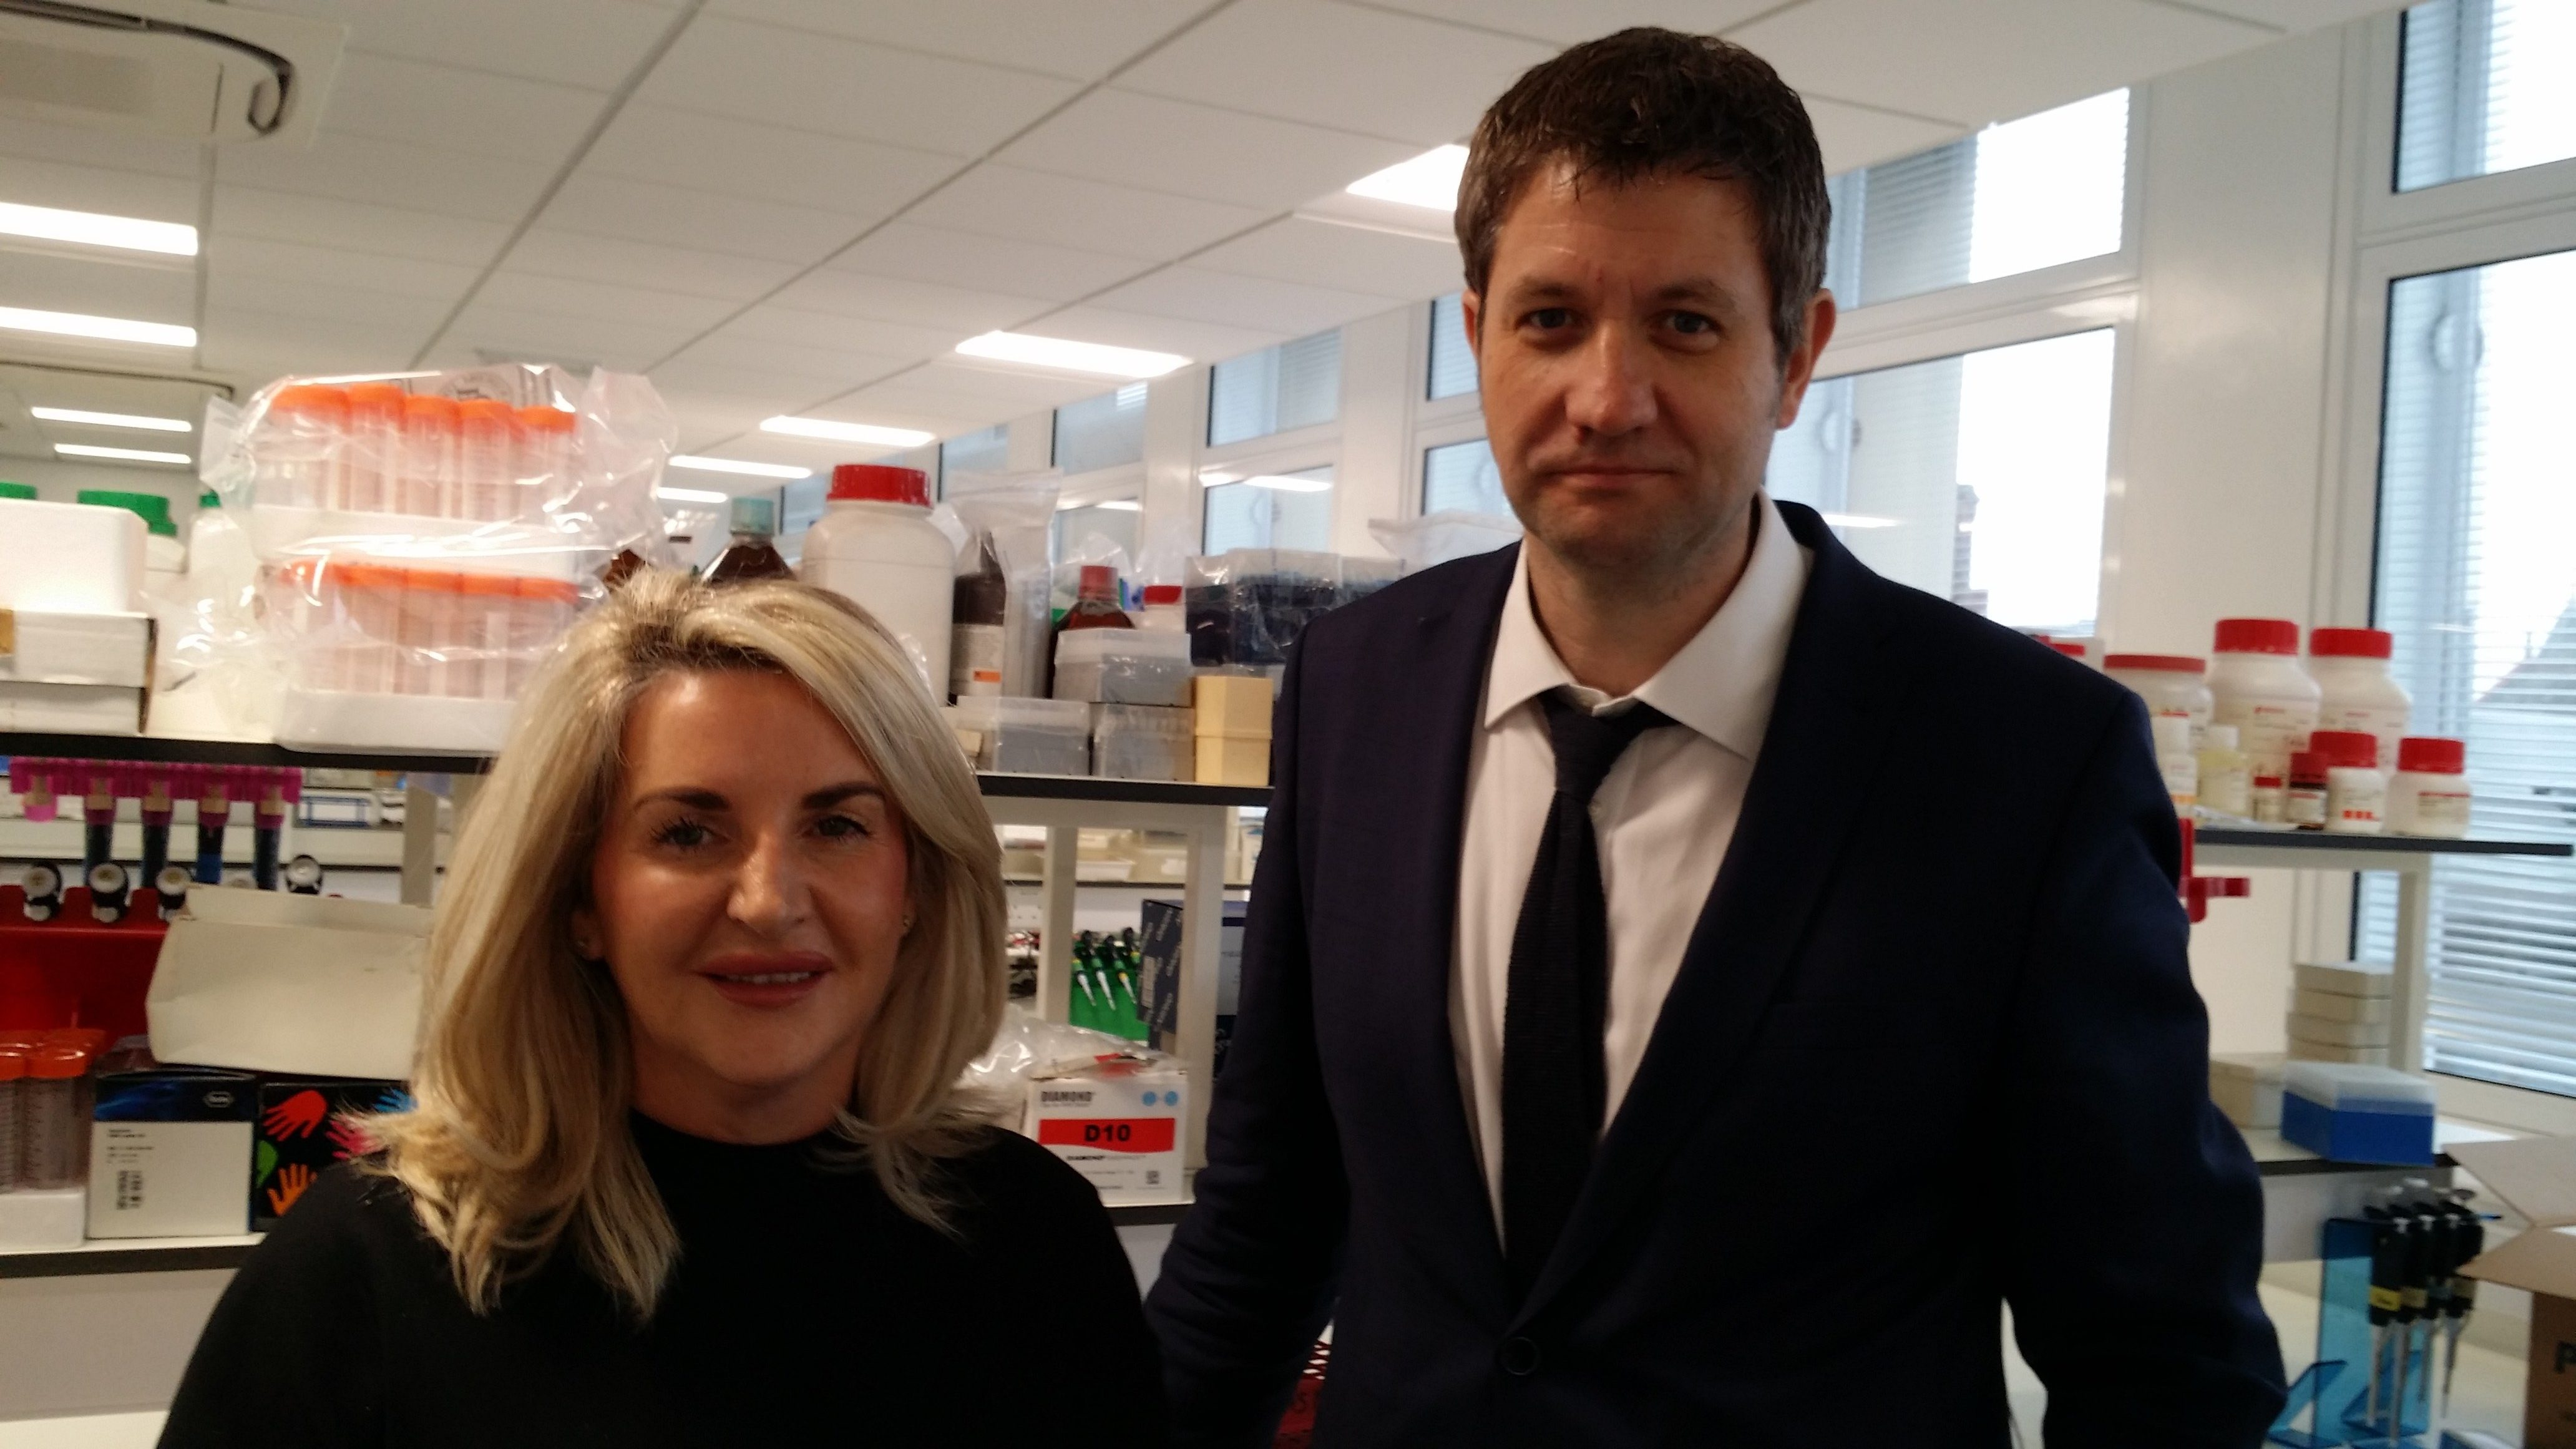 Liverpool Scientists set to get Million Pound Cash Boost for Cancer Research